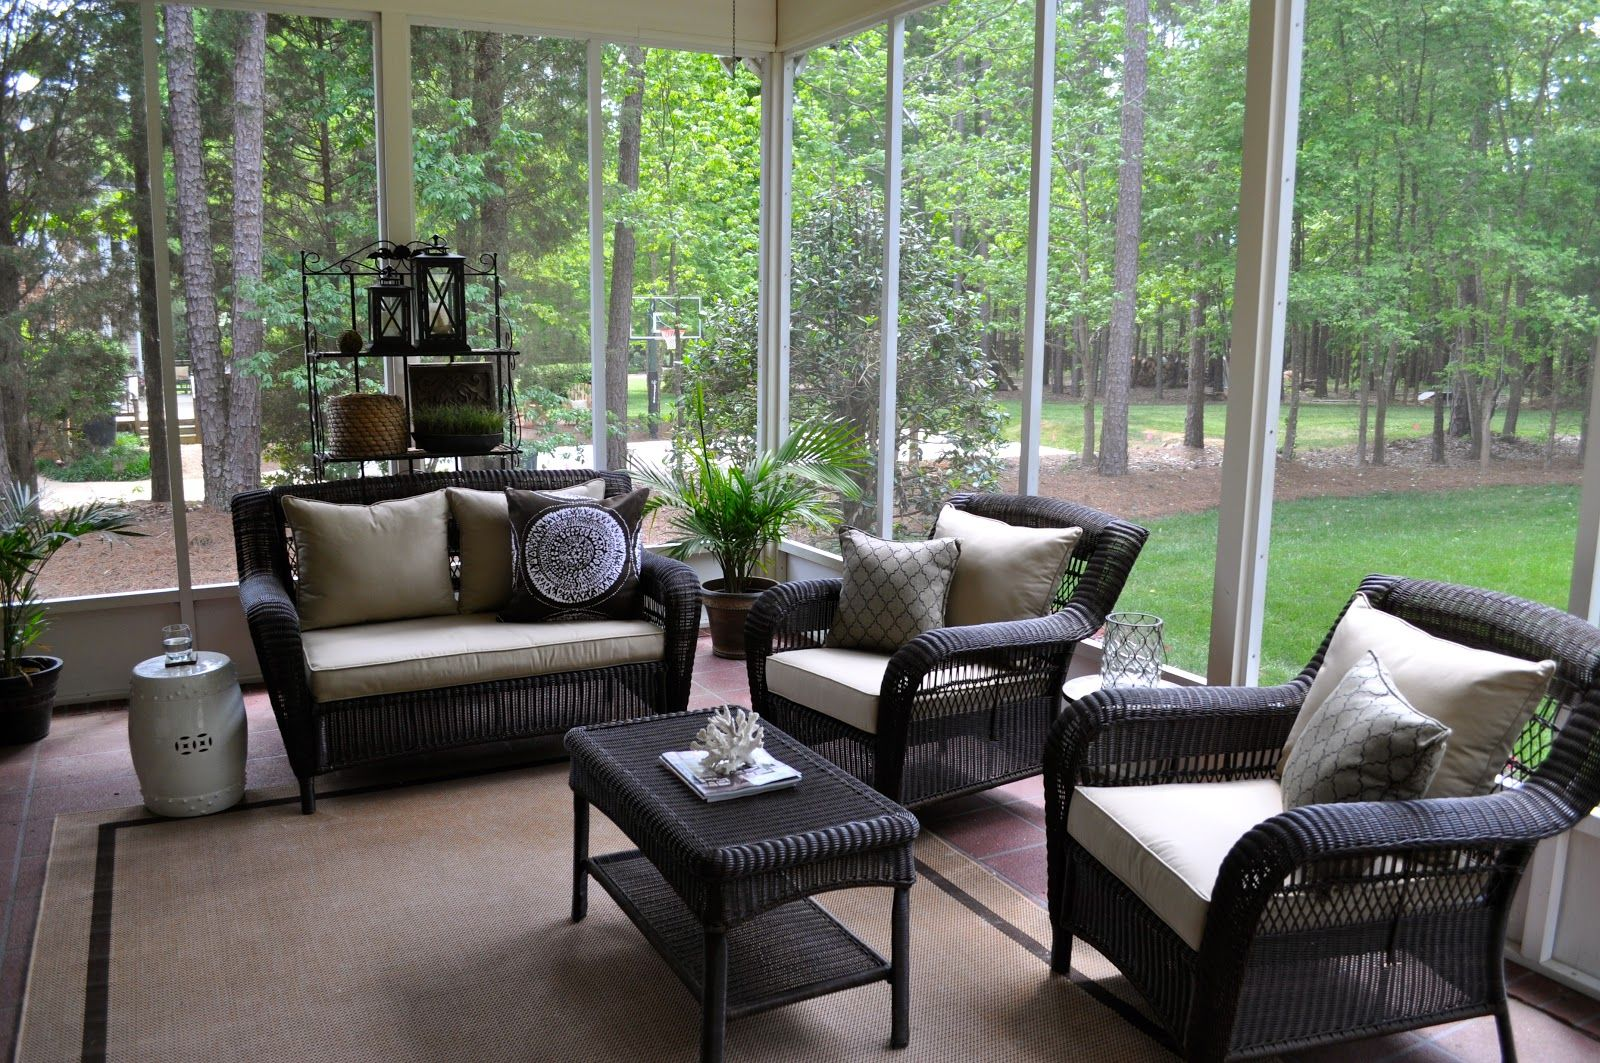 Dazzling Sams Patio Furniture In Screened Porch From Patio